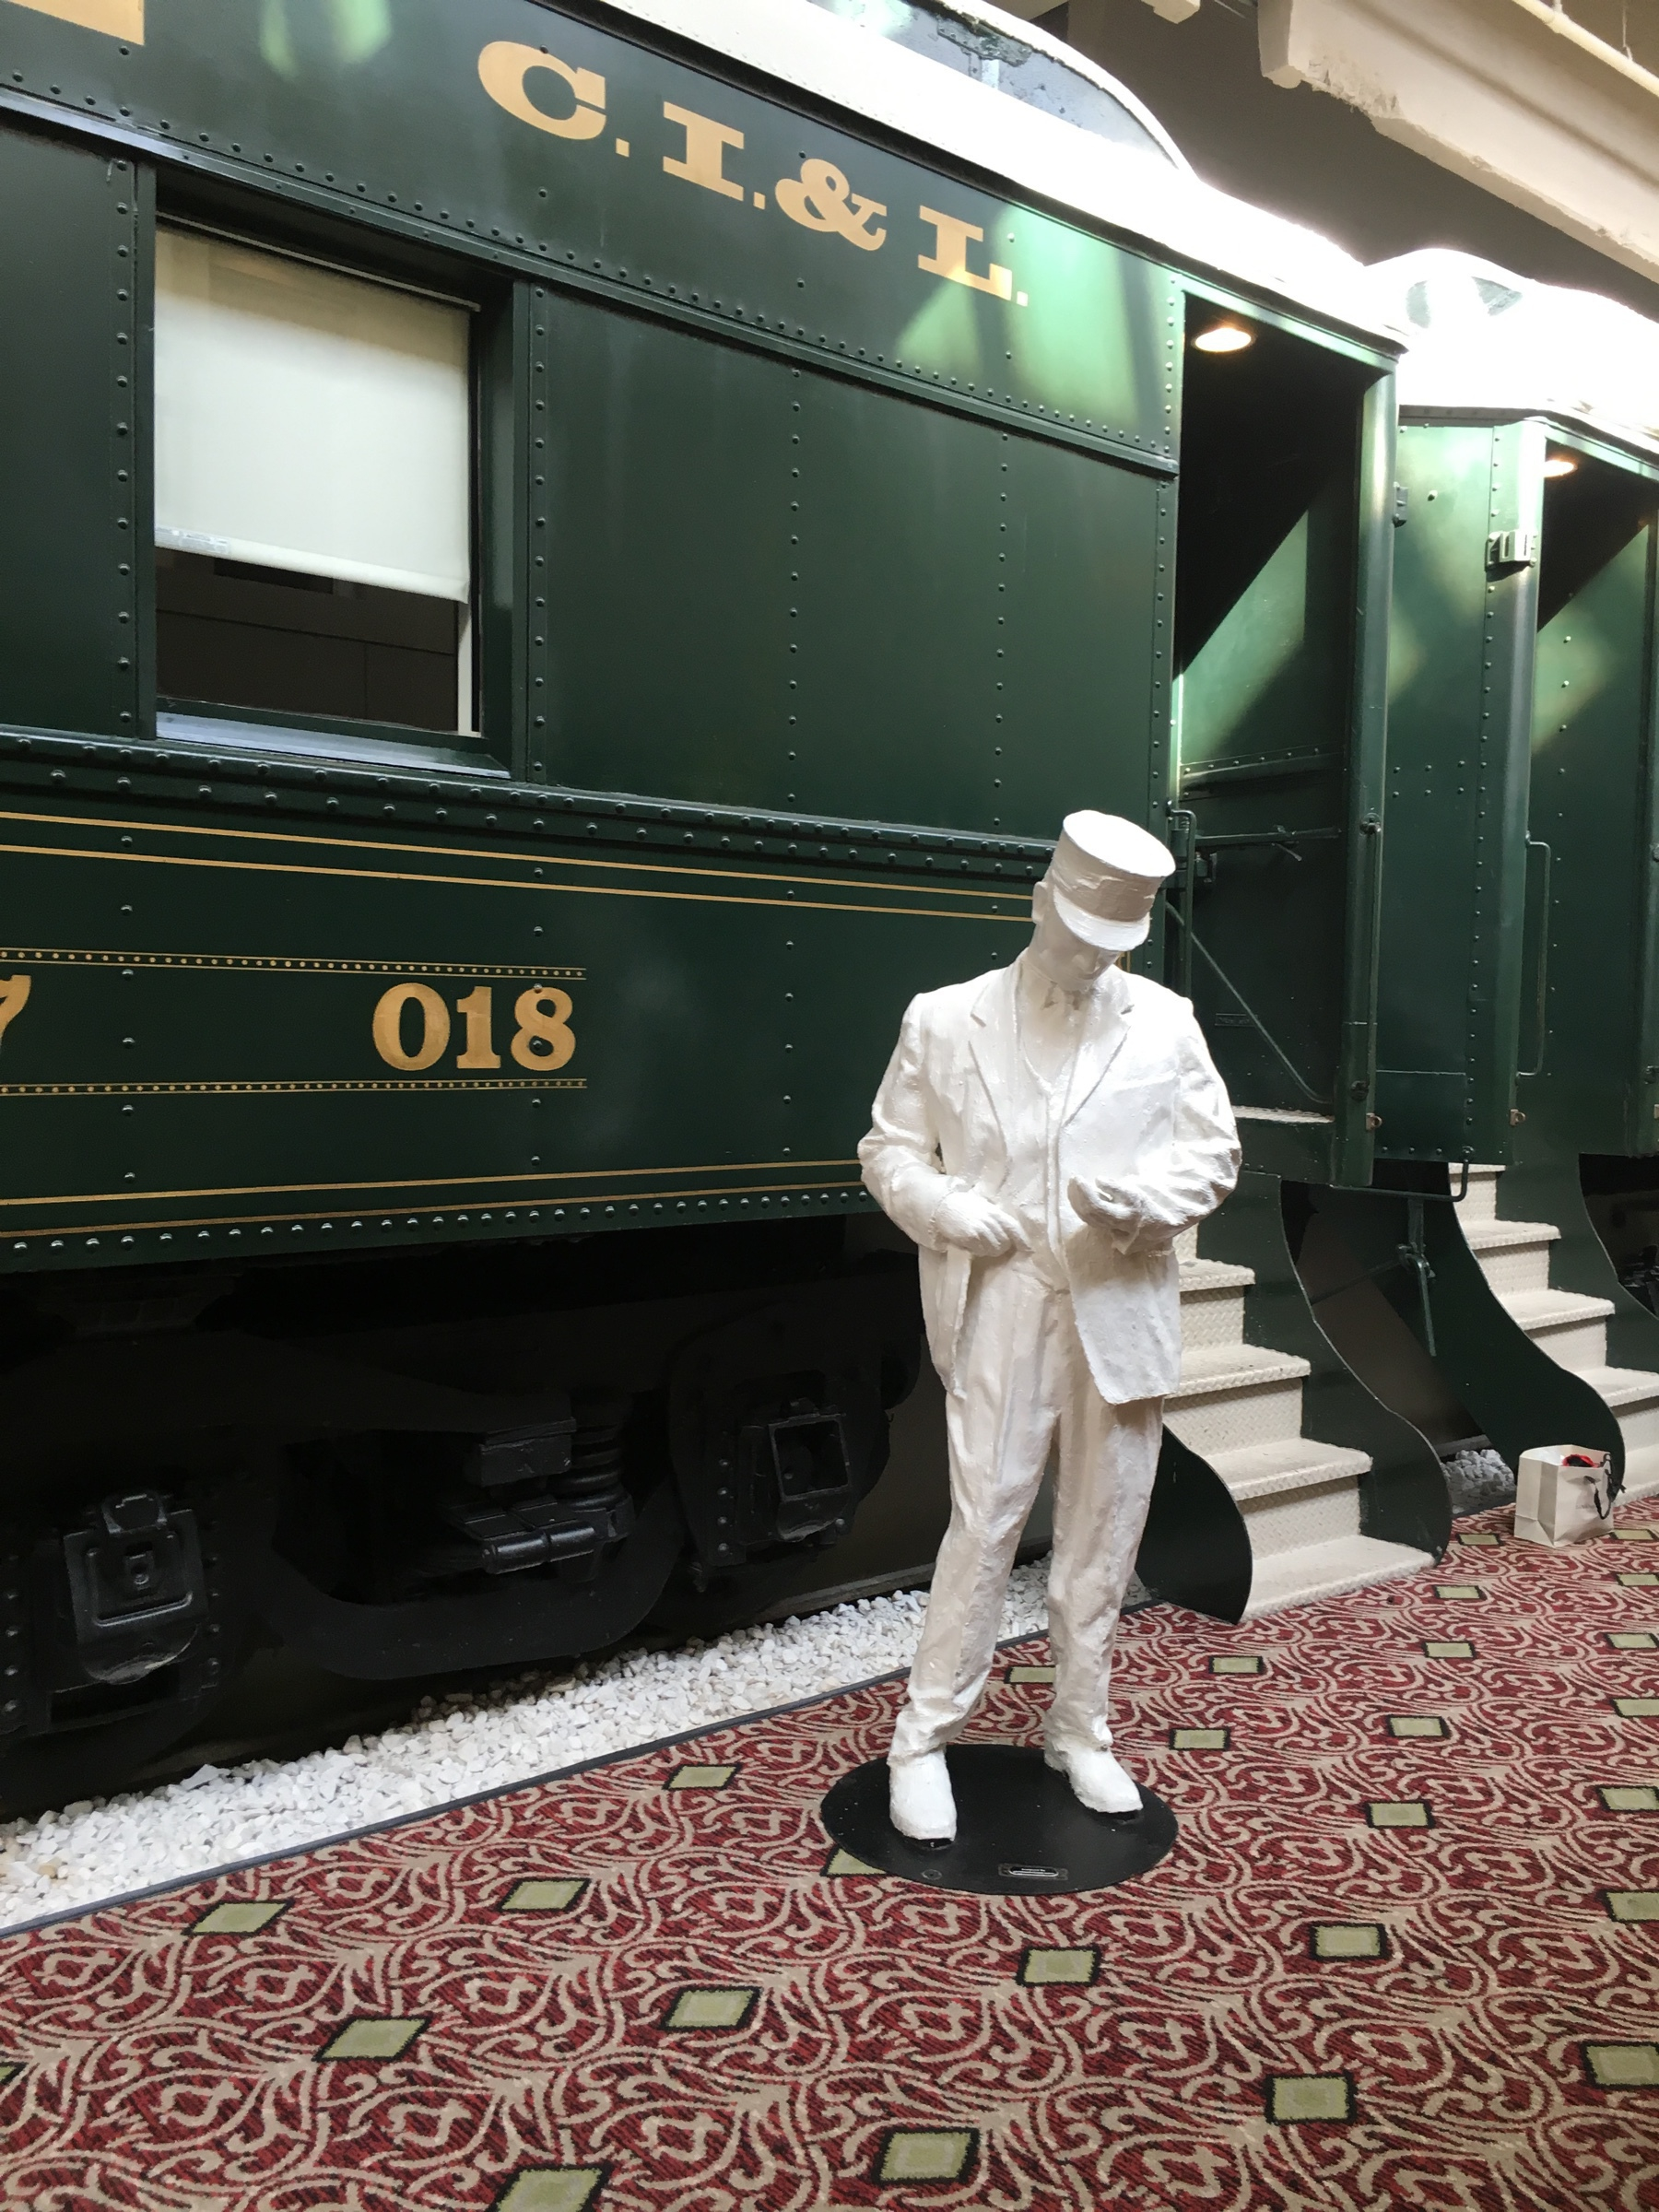 train car hotel room exterior with statue of a conductor